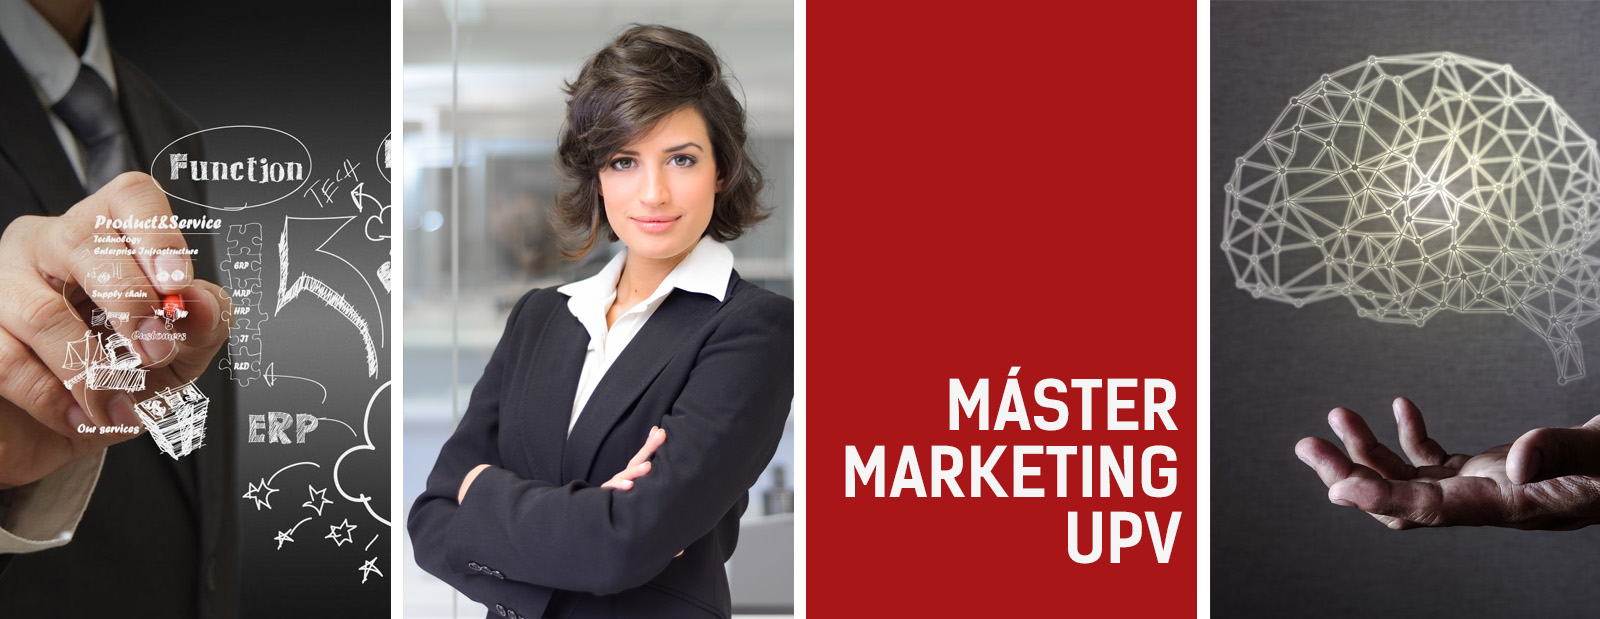 Master marketing UPV